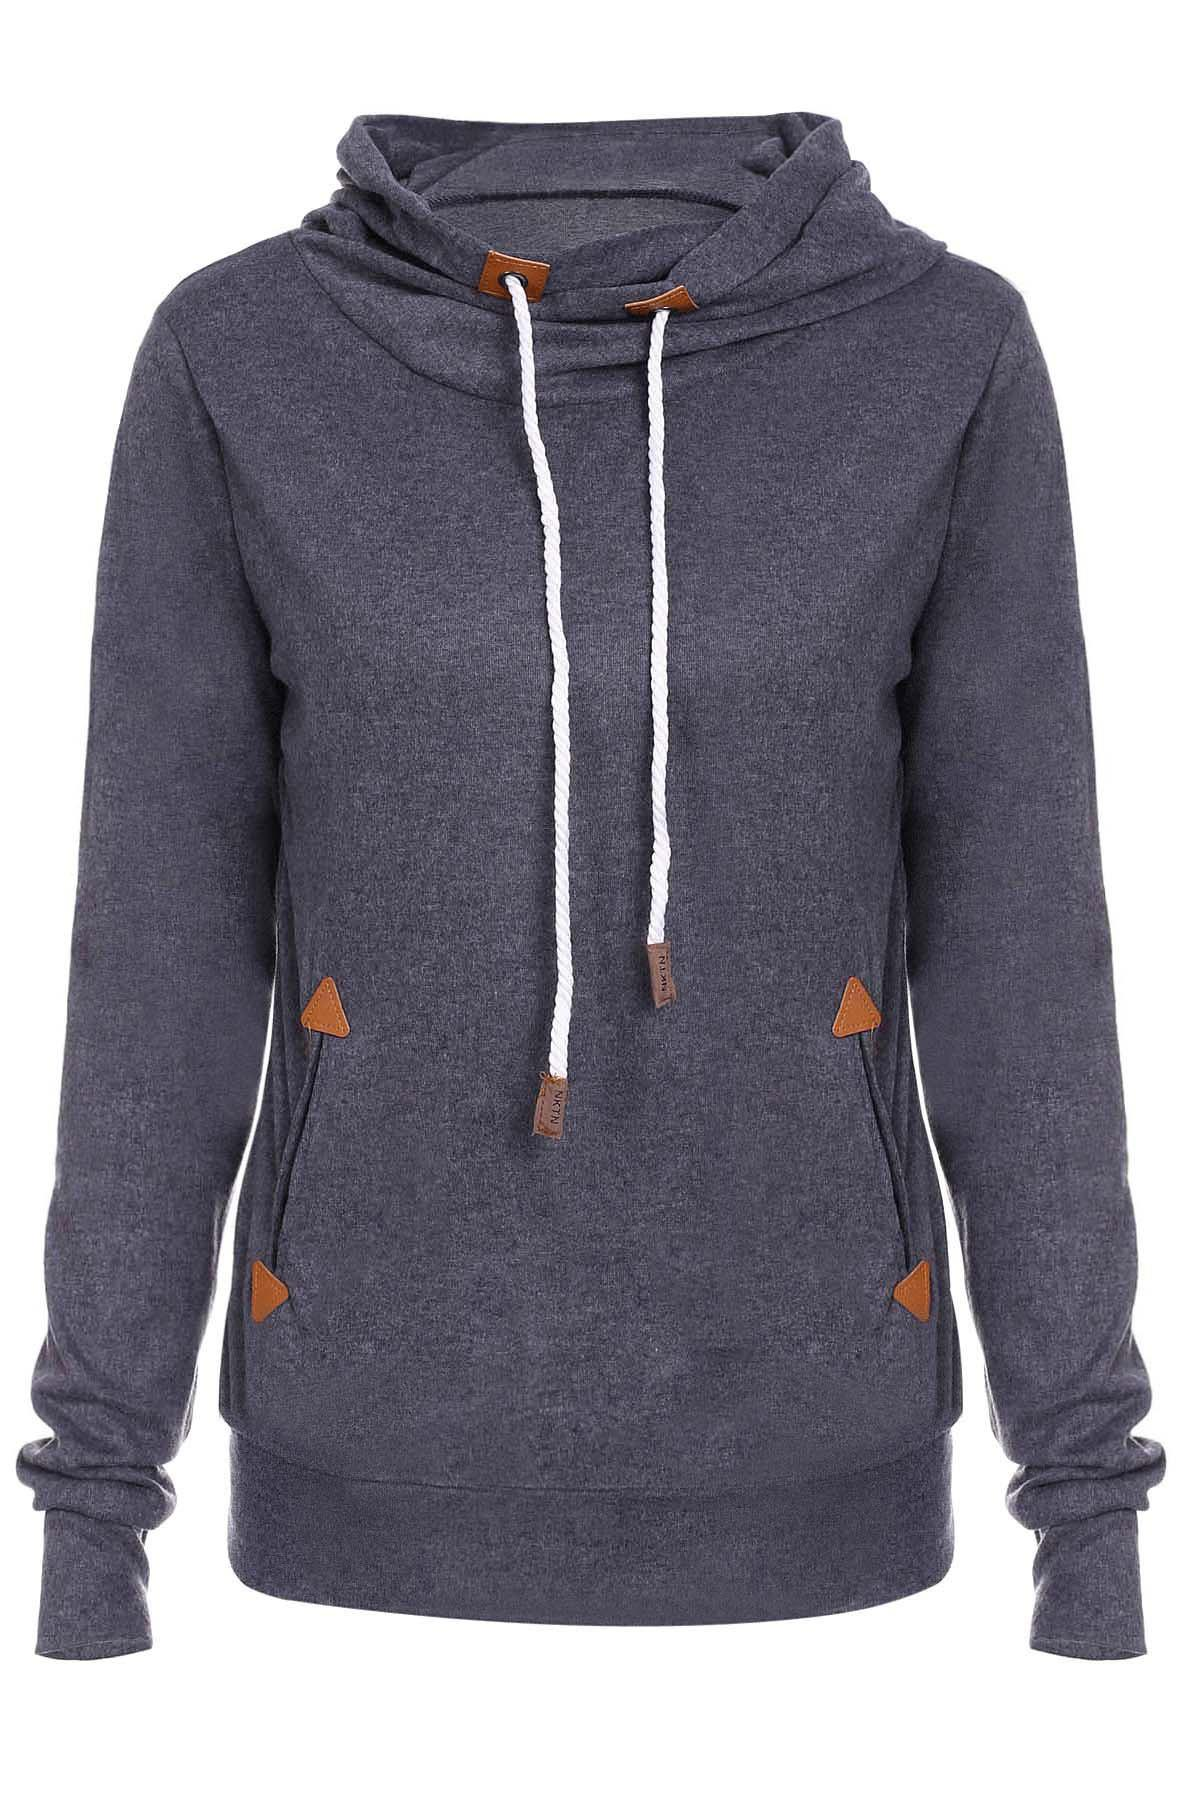 Stylish Hooded Long Sleeve Spliced Draped Women's Hoodie - DEEP GRAY L